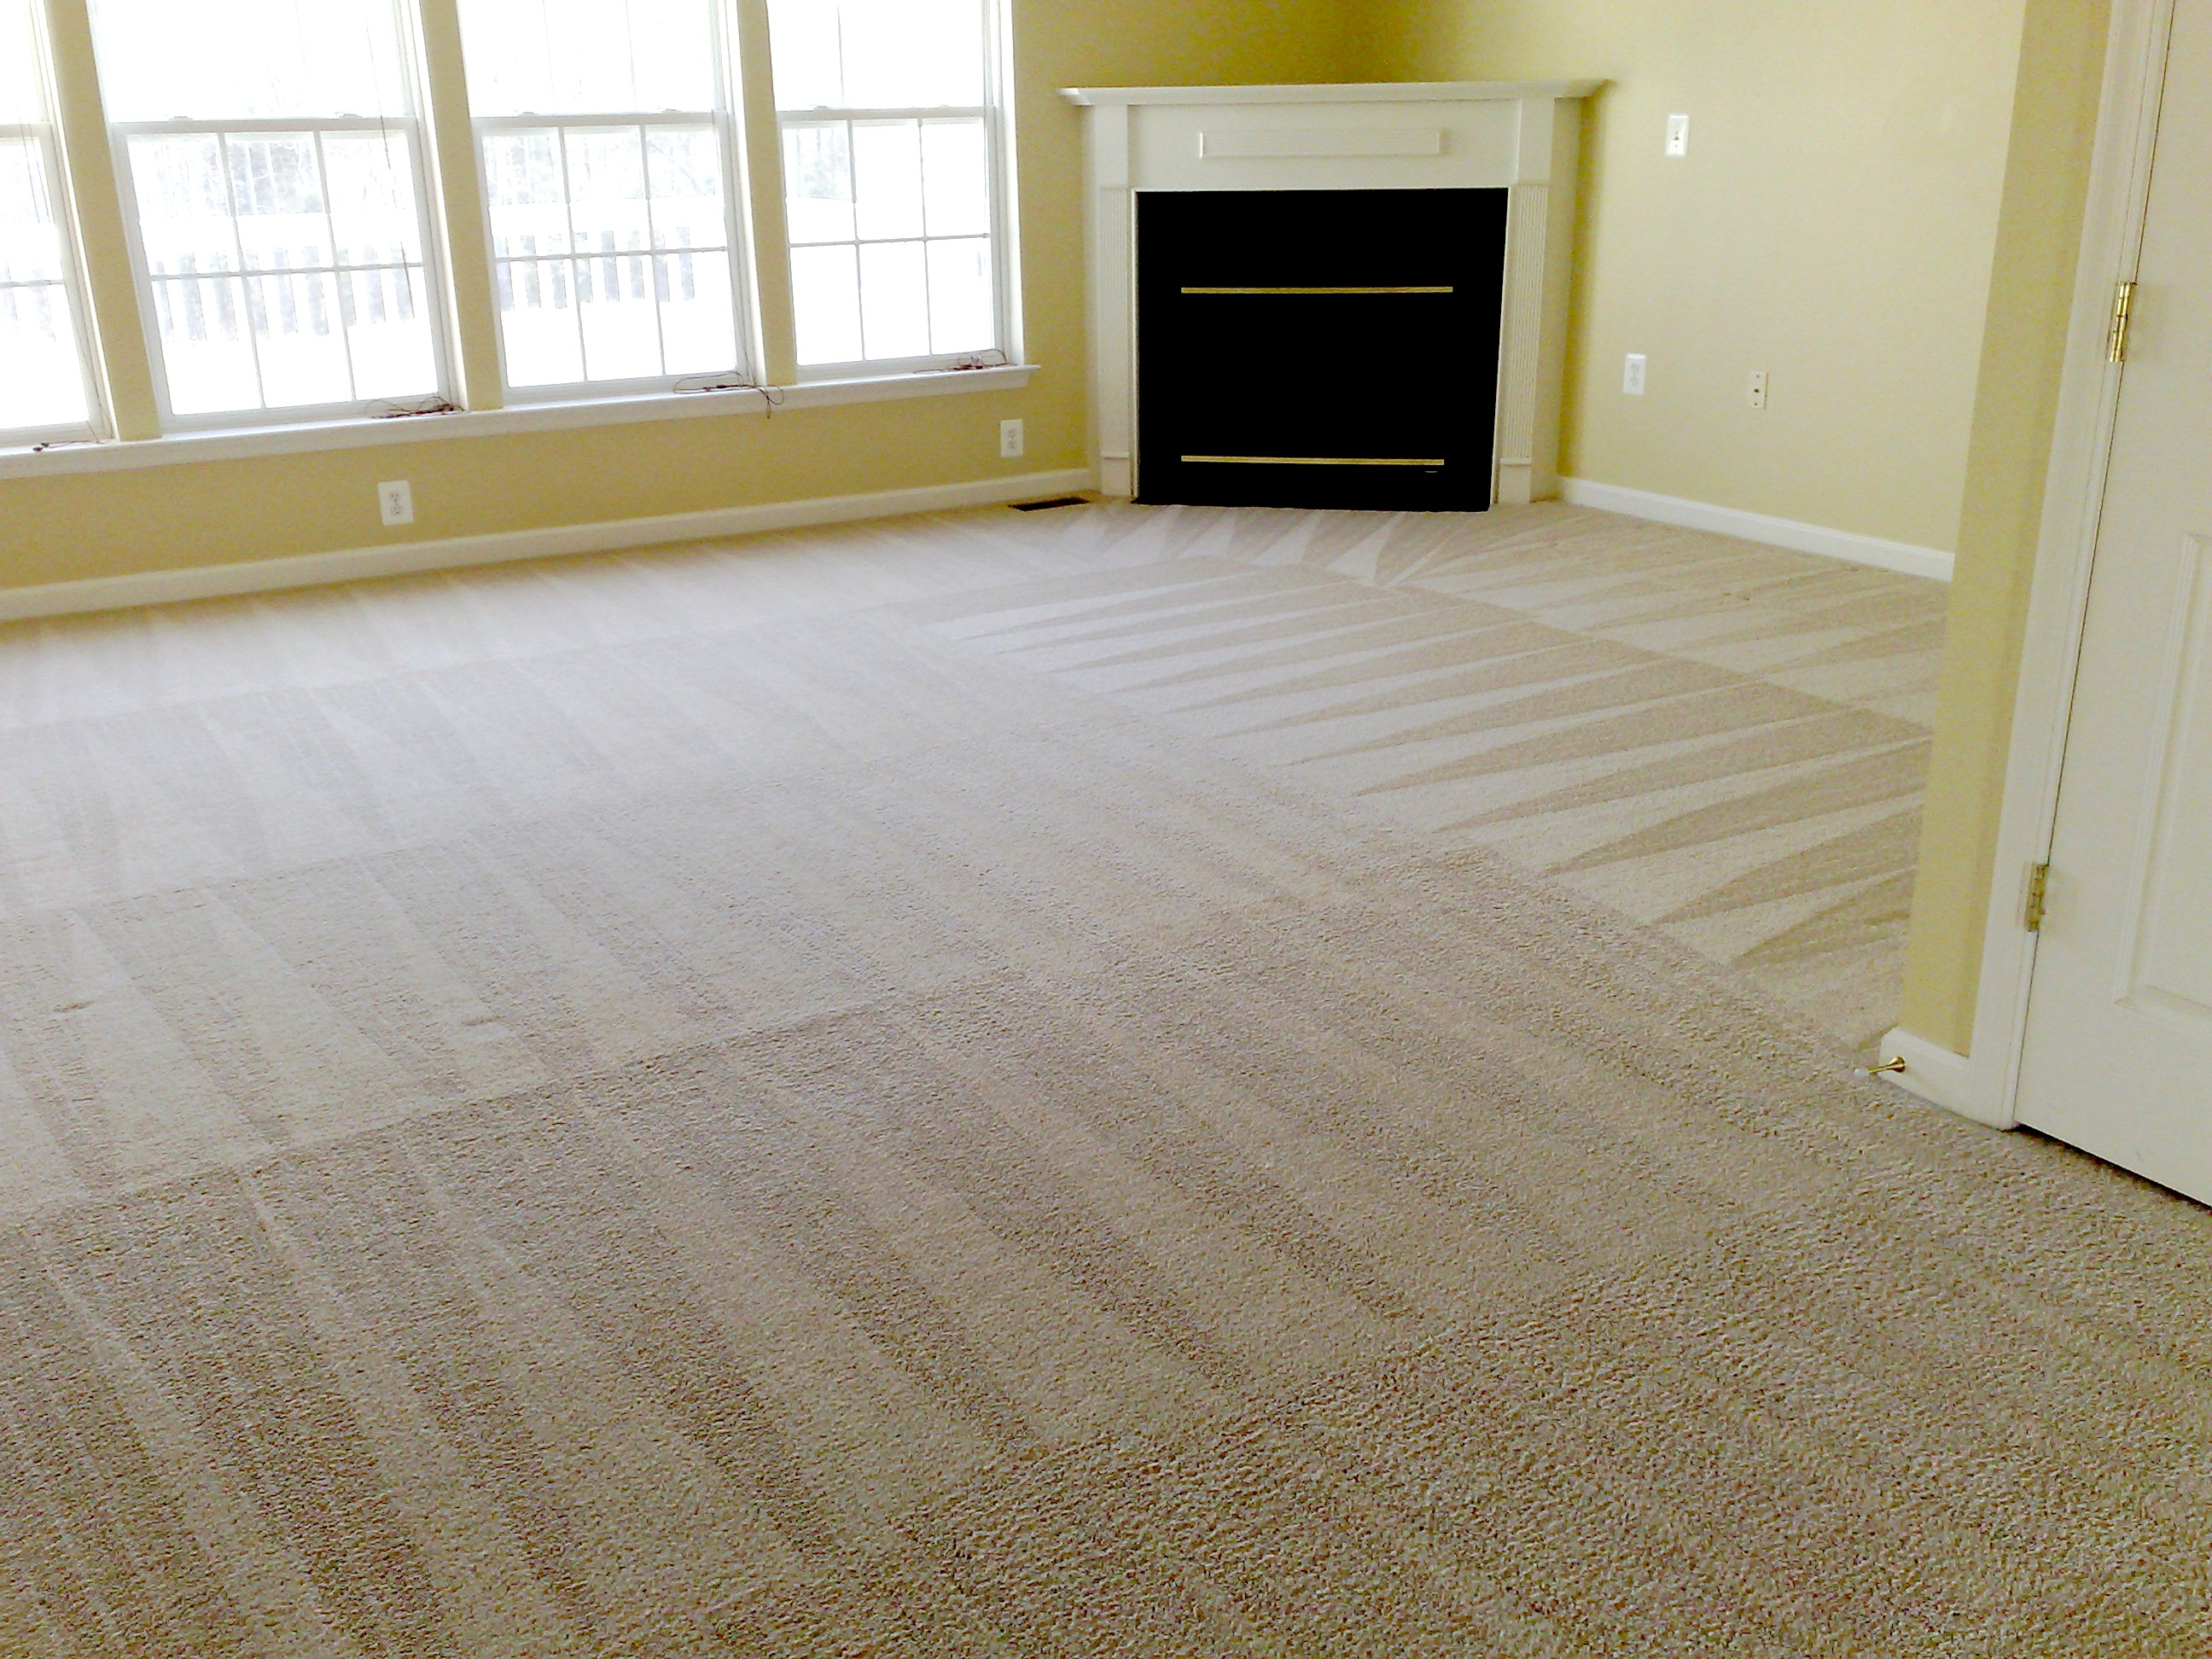 Carpet cleaning lakeville ma the steam master carpet cleaning lakeville ma 02347 solutioingenieria Choice Image